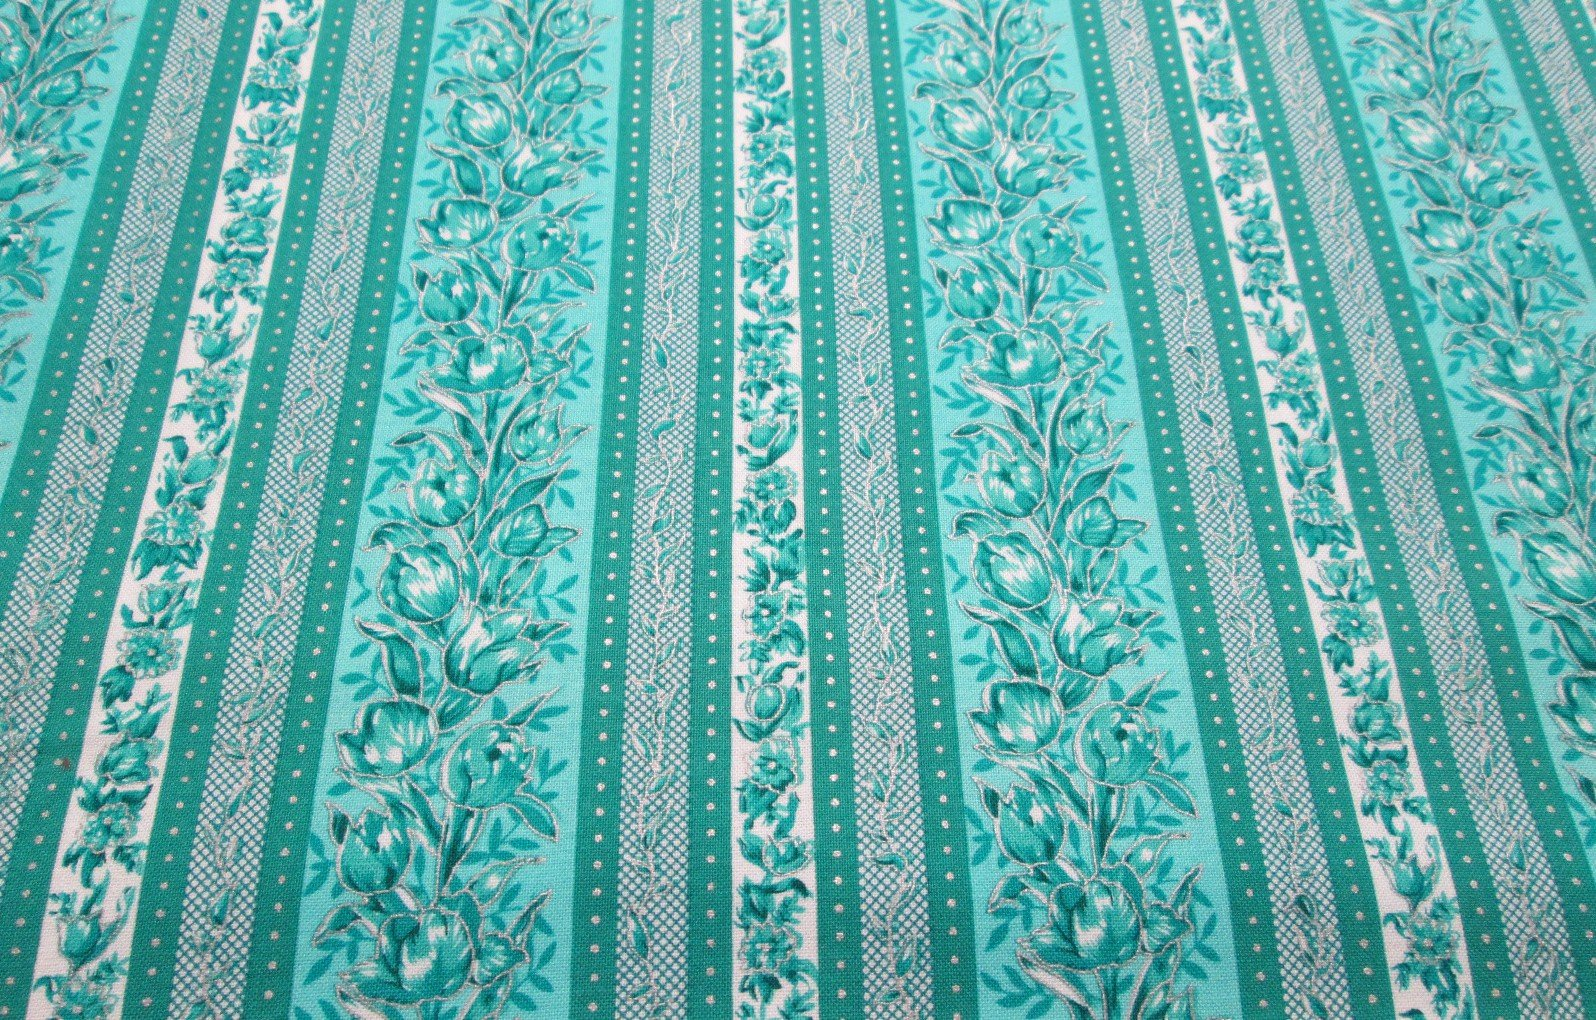 Blank quilting fabric btr 3912 for Quilting material